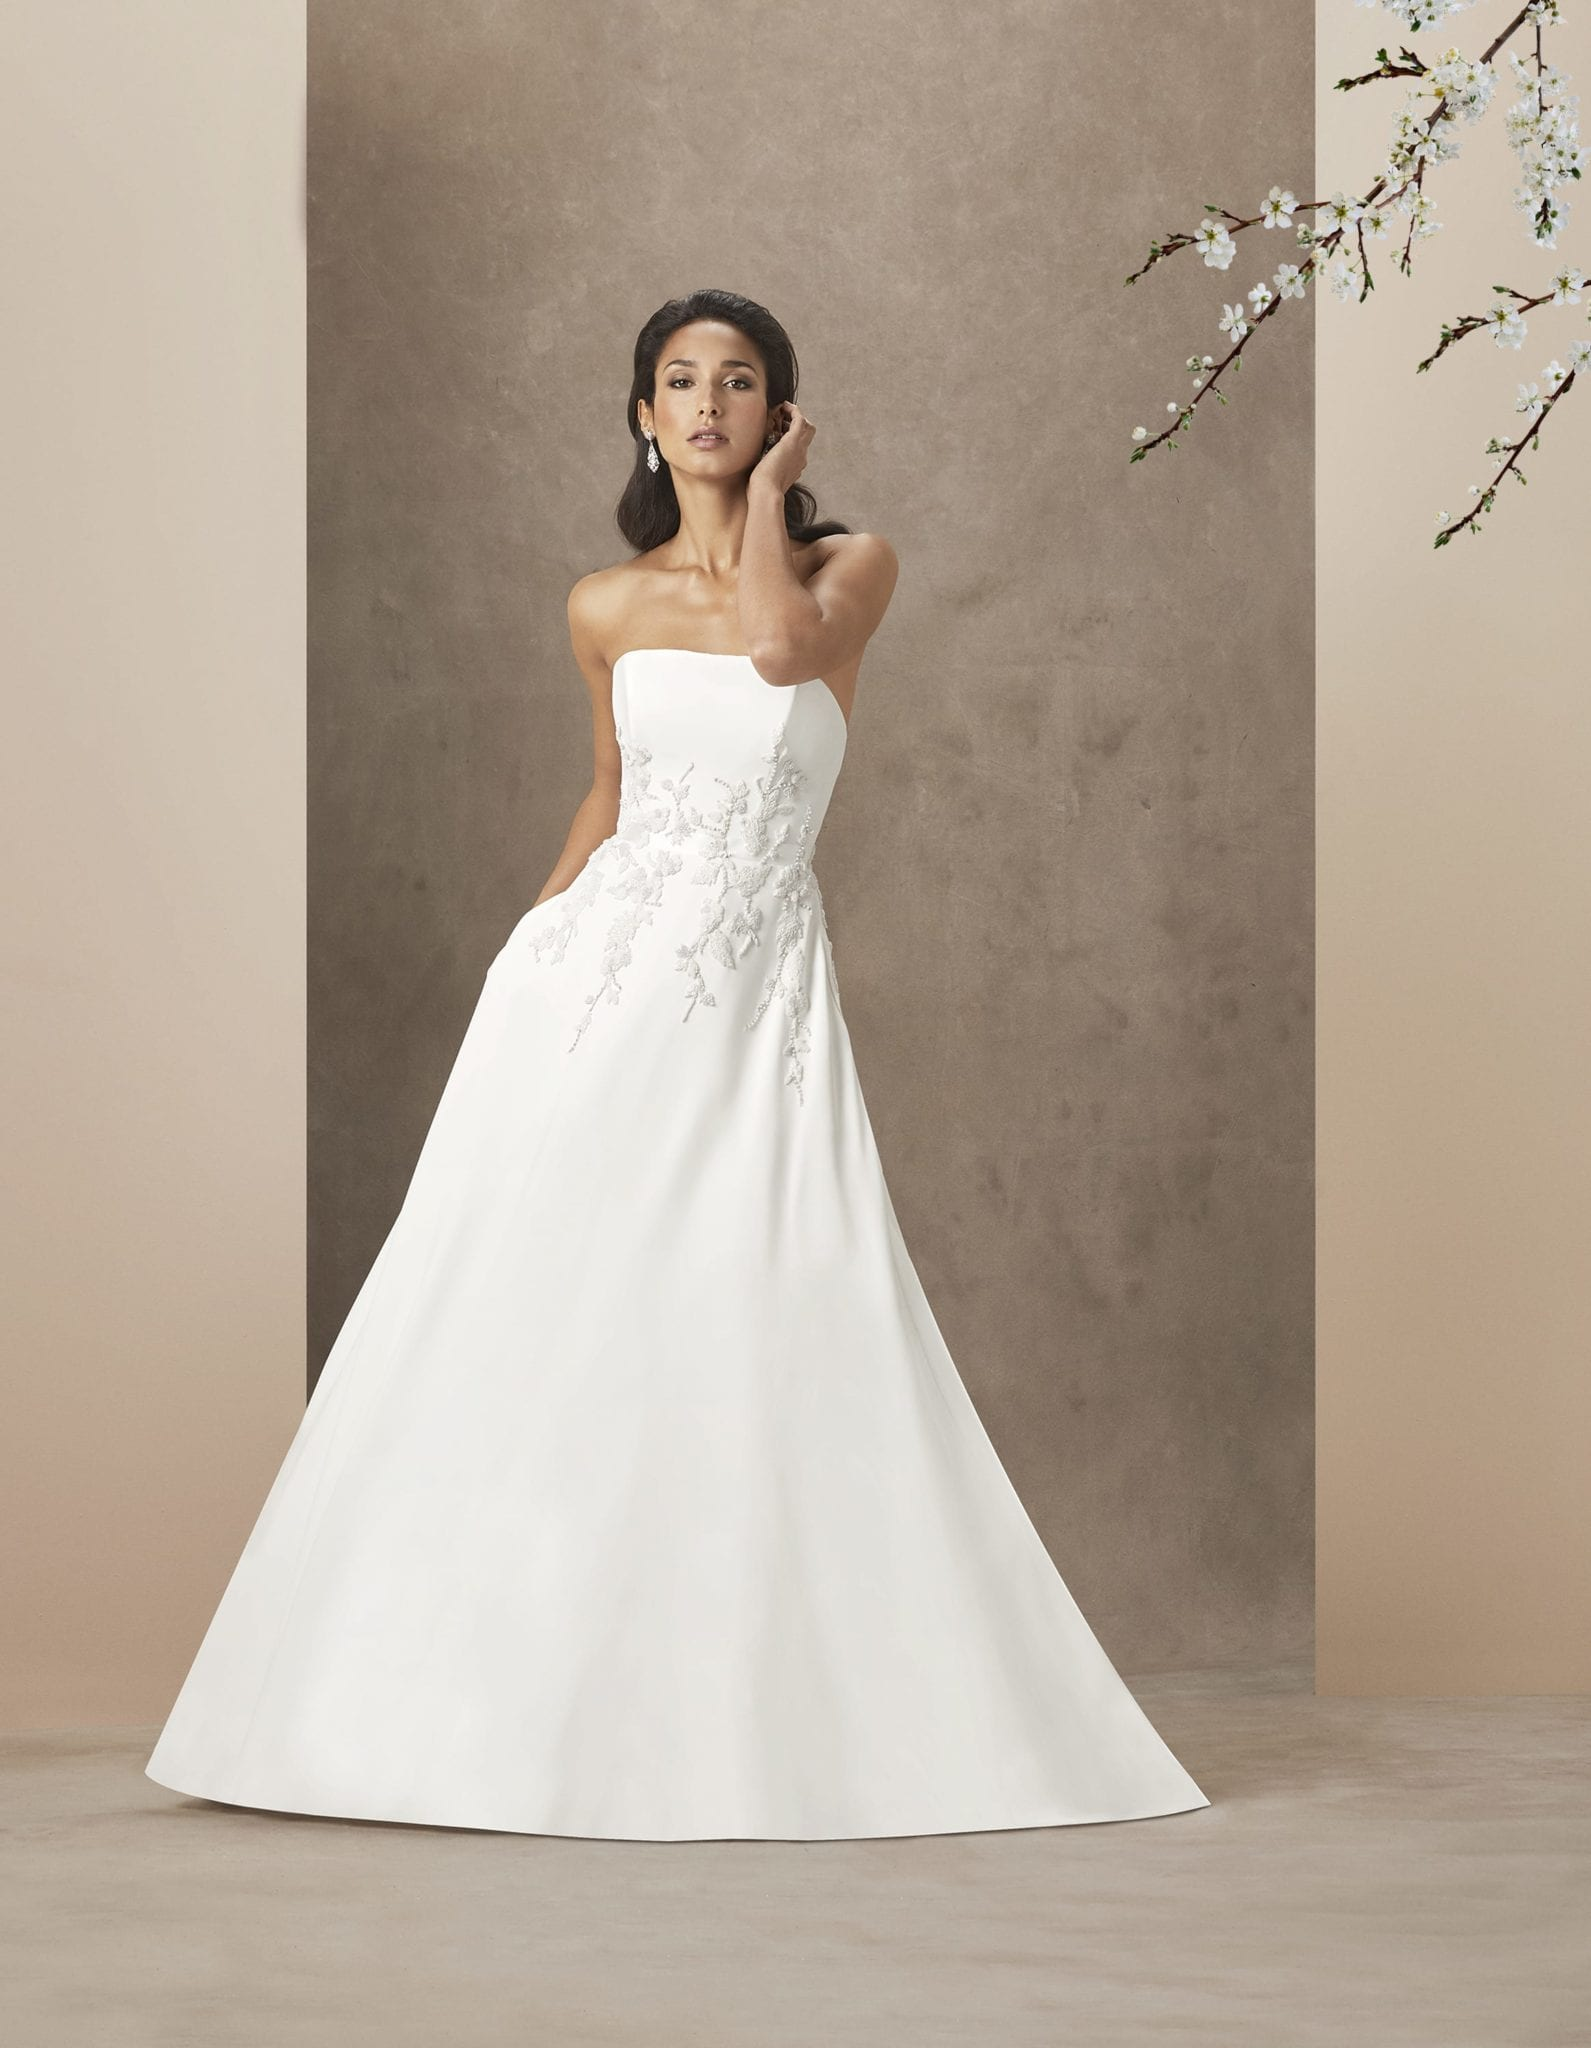 Do you entrust your bridal gown experience to an independent boutique? Click to read more about our tips on how to shop at a wedding dress sample sale.